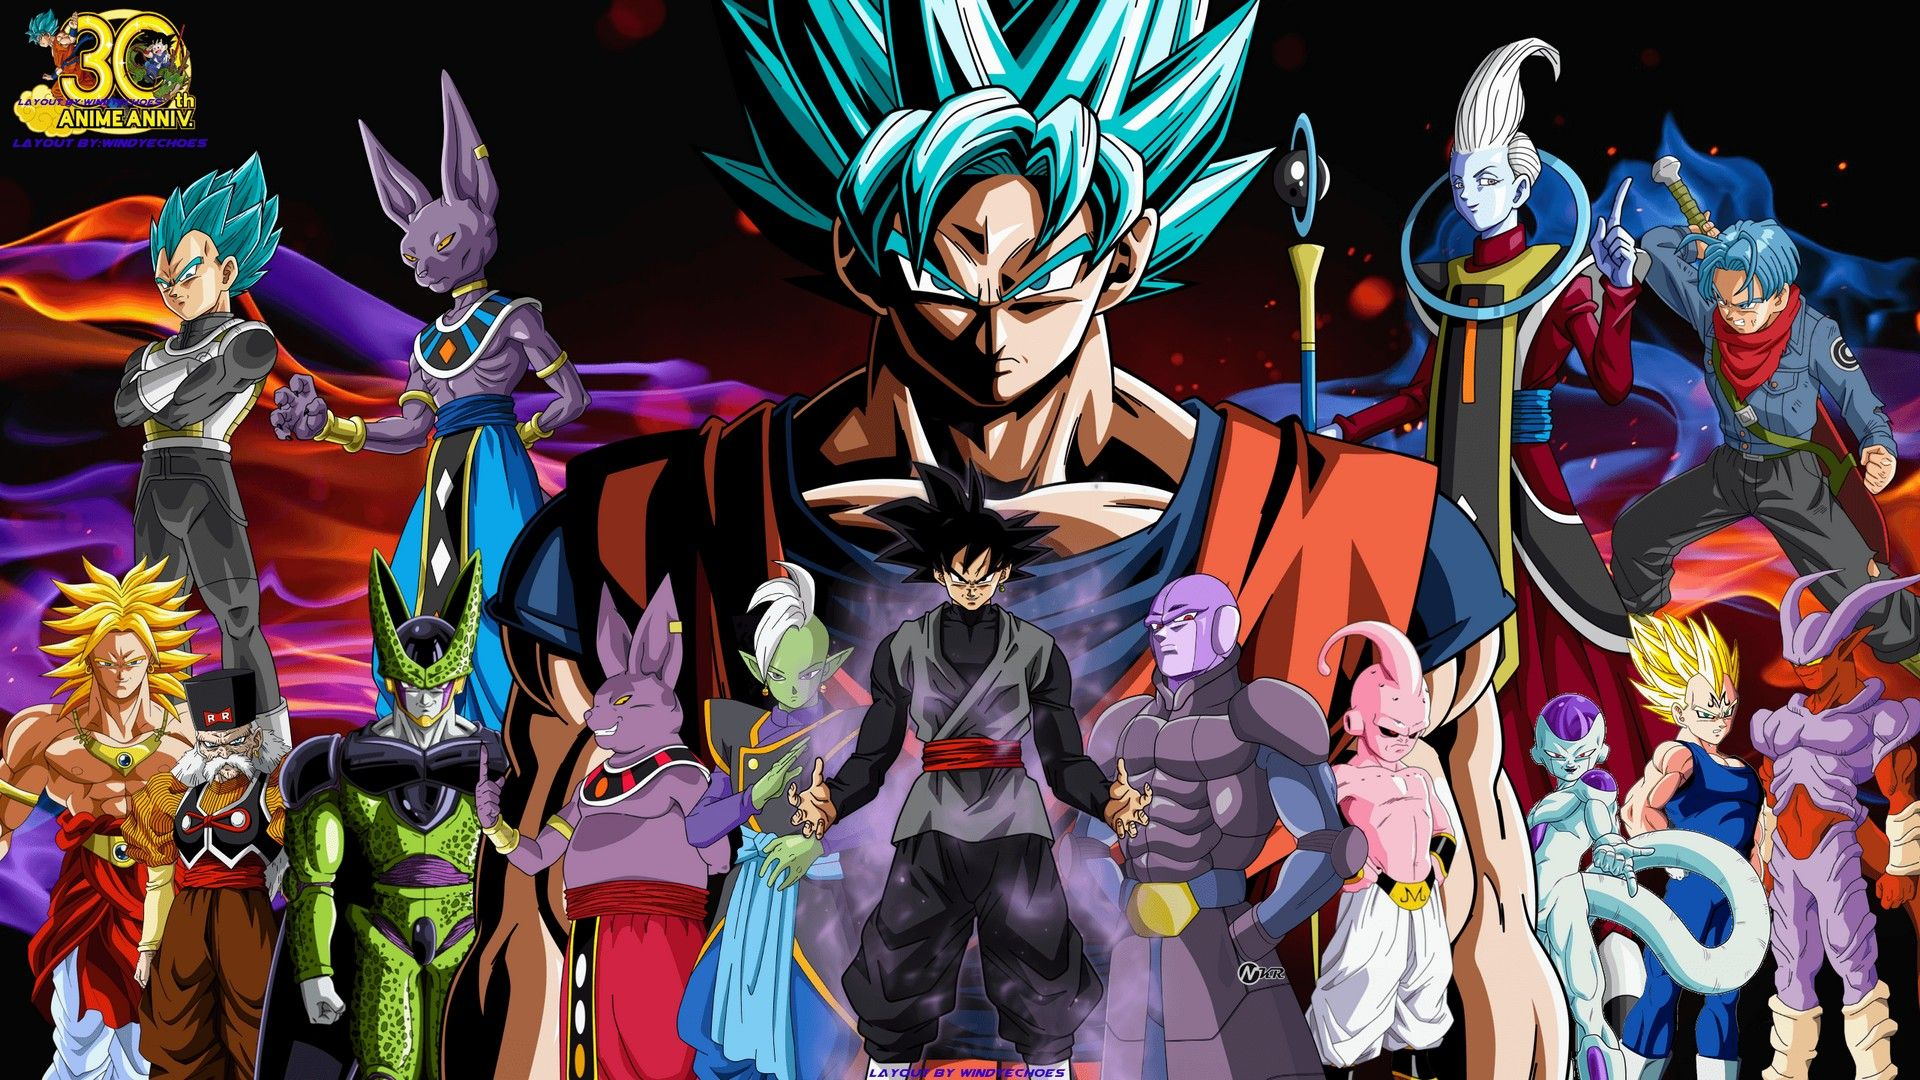 dragon ball super wallpaper full hd - 2018 wallpapers hd | pinterest